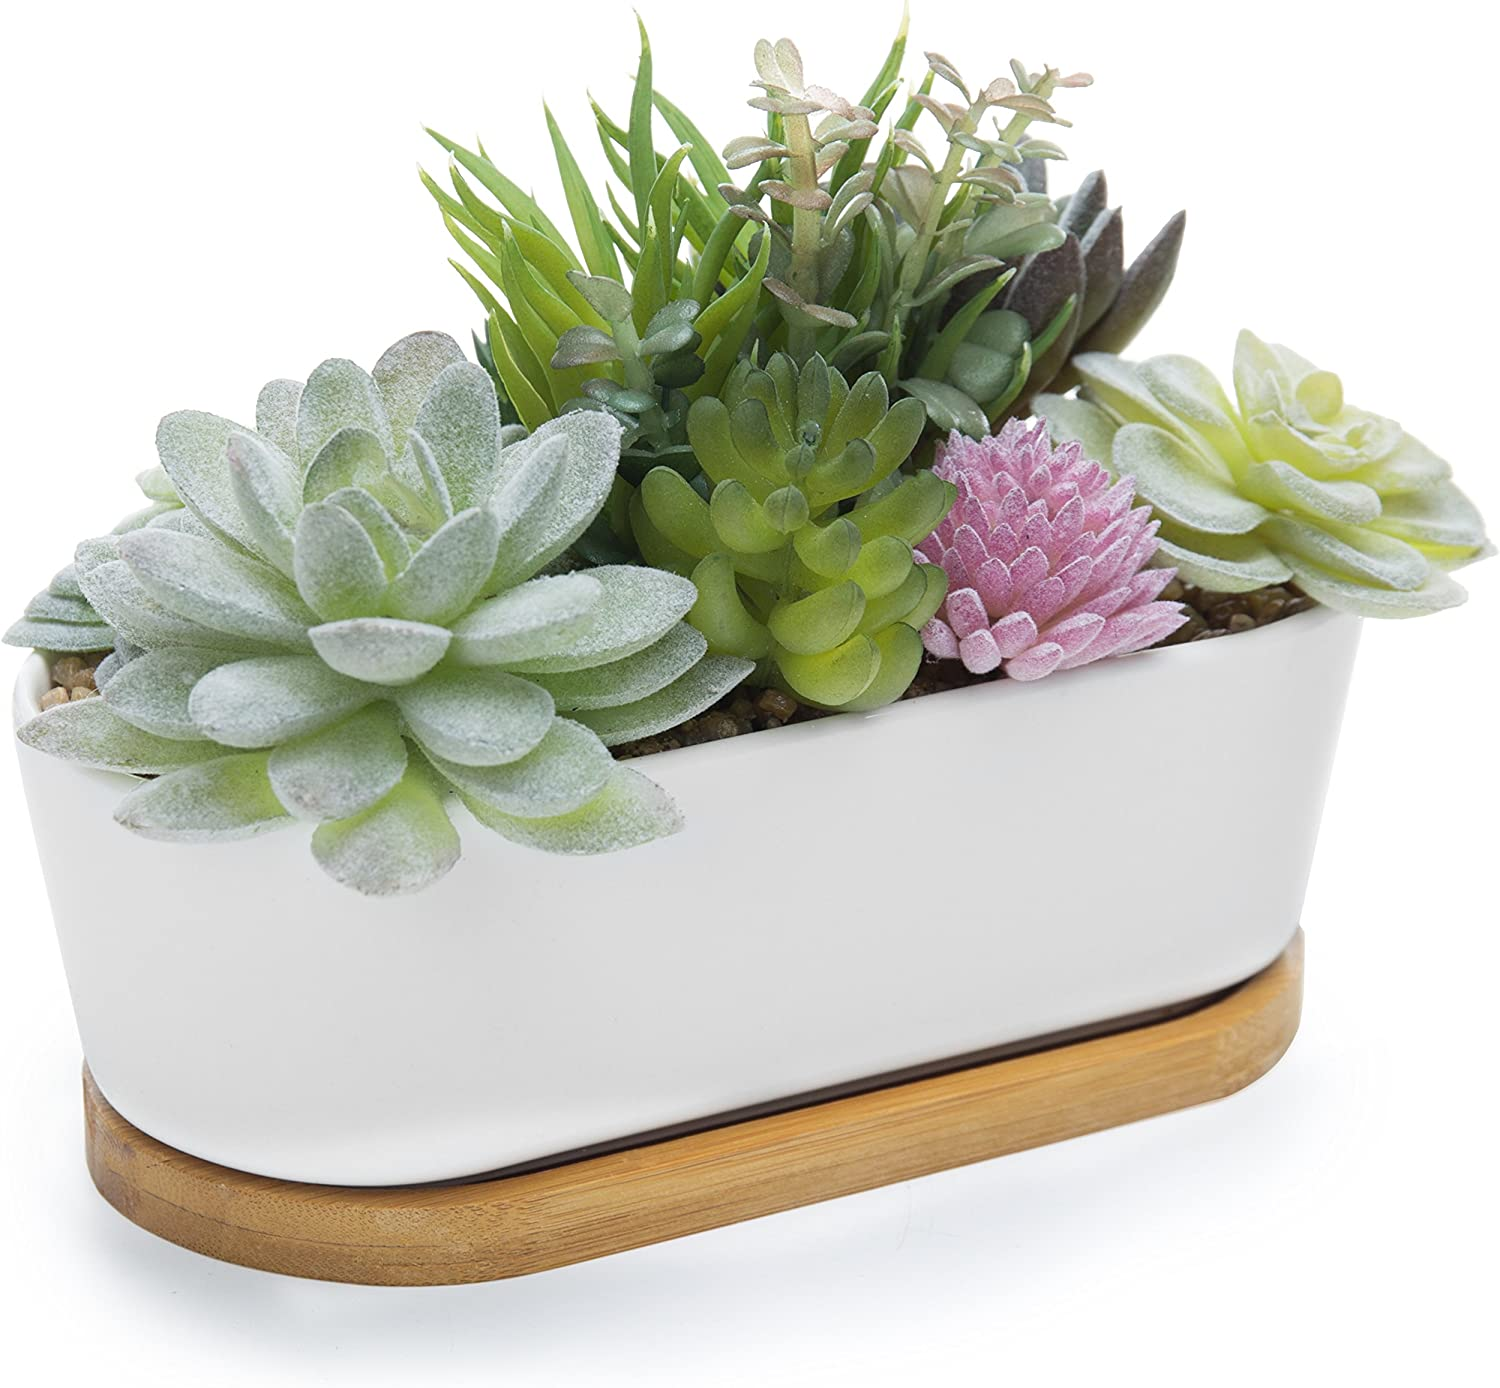 MyGift Artificial Succulent Plant Arrangement in Ceramic Trough Planter & Bamboo Tray (Plant 3)